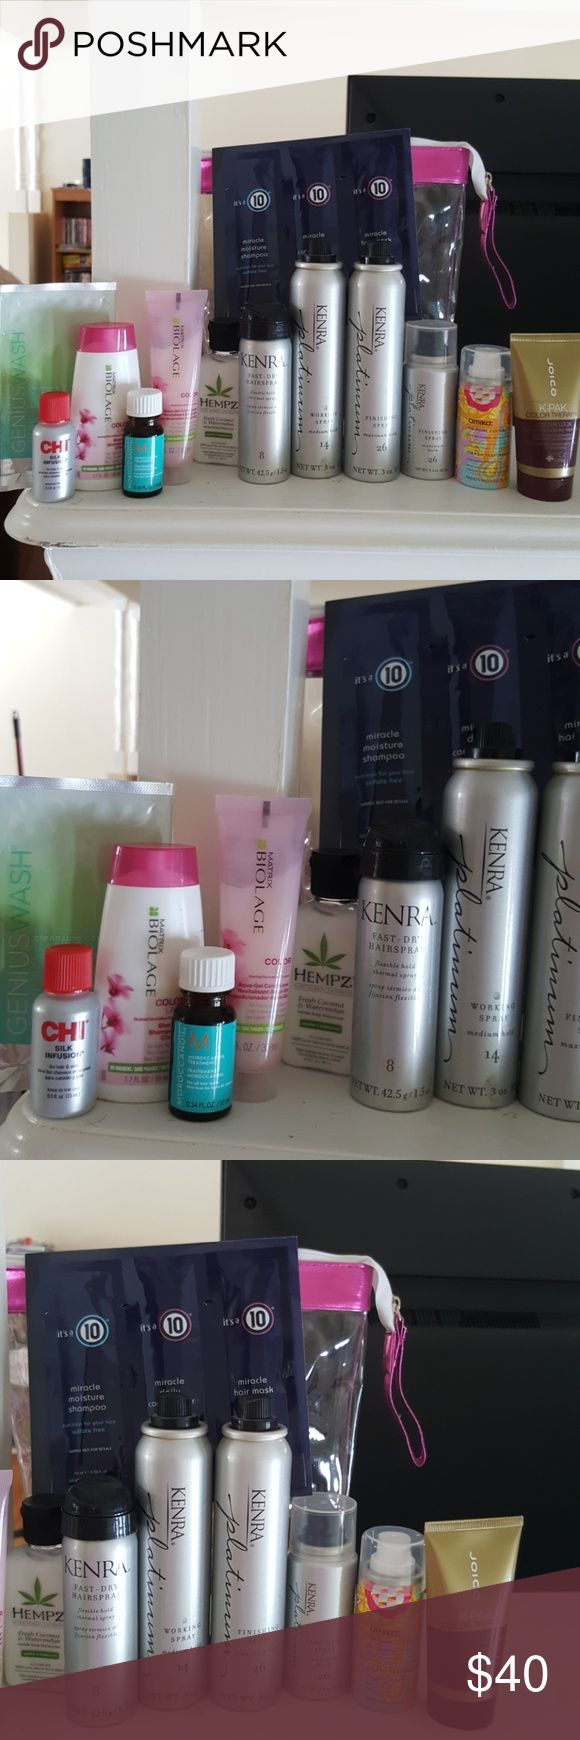 Daily hair care lot Everything is new and unused Includes: -Joico k-pak color therapy luster lock 1.7oz -amika un.done texture spray .75 oz -kenra finishing spray 26 1.5 oz -kenra finishing spray 26 3 oz -kenra working spray 14 3 oz -kenra fast dry hair spray 8 1.5 oz -moroccan oil .34 oz -chi silk infusion -biolage shampoo colorlast -biolage conditioner colorlast -hempz fresh coconut and watermelon lotion -genius wash cleansing conditioner sample -its a 10 shampoo, conditioner and miracle…